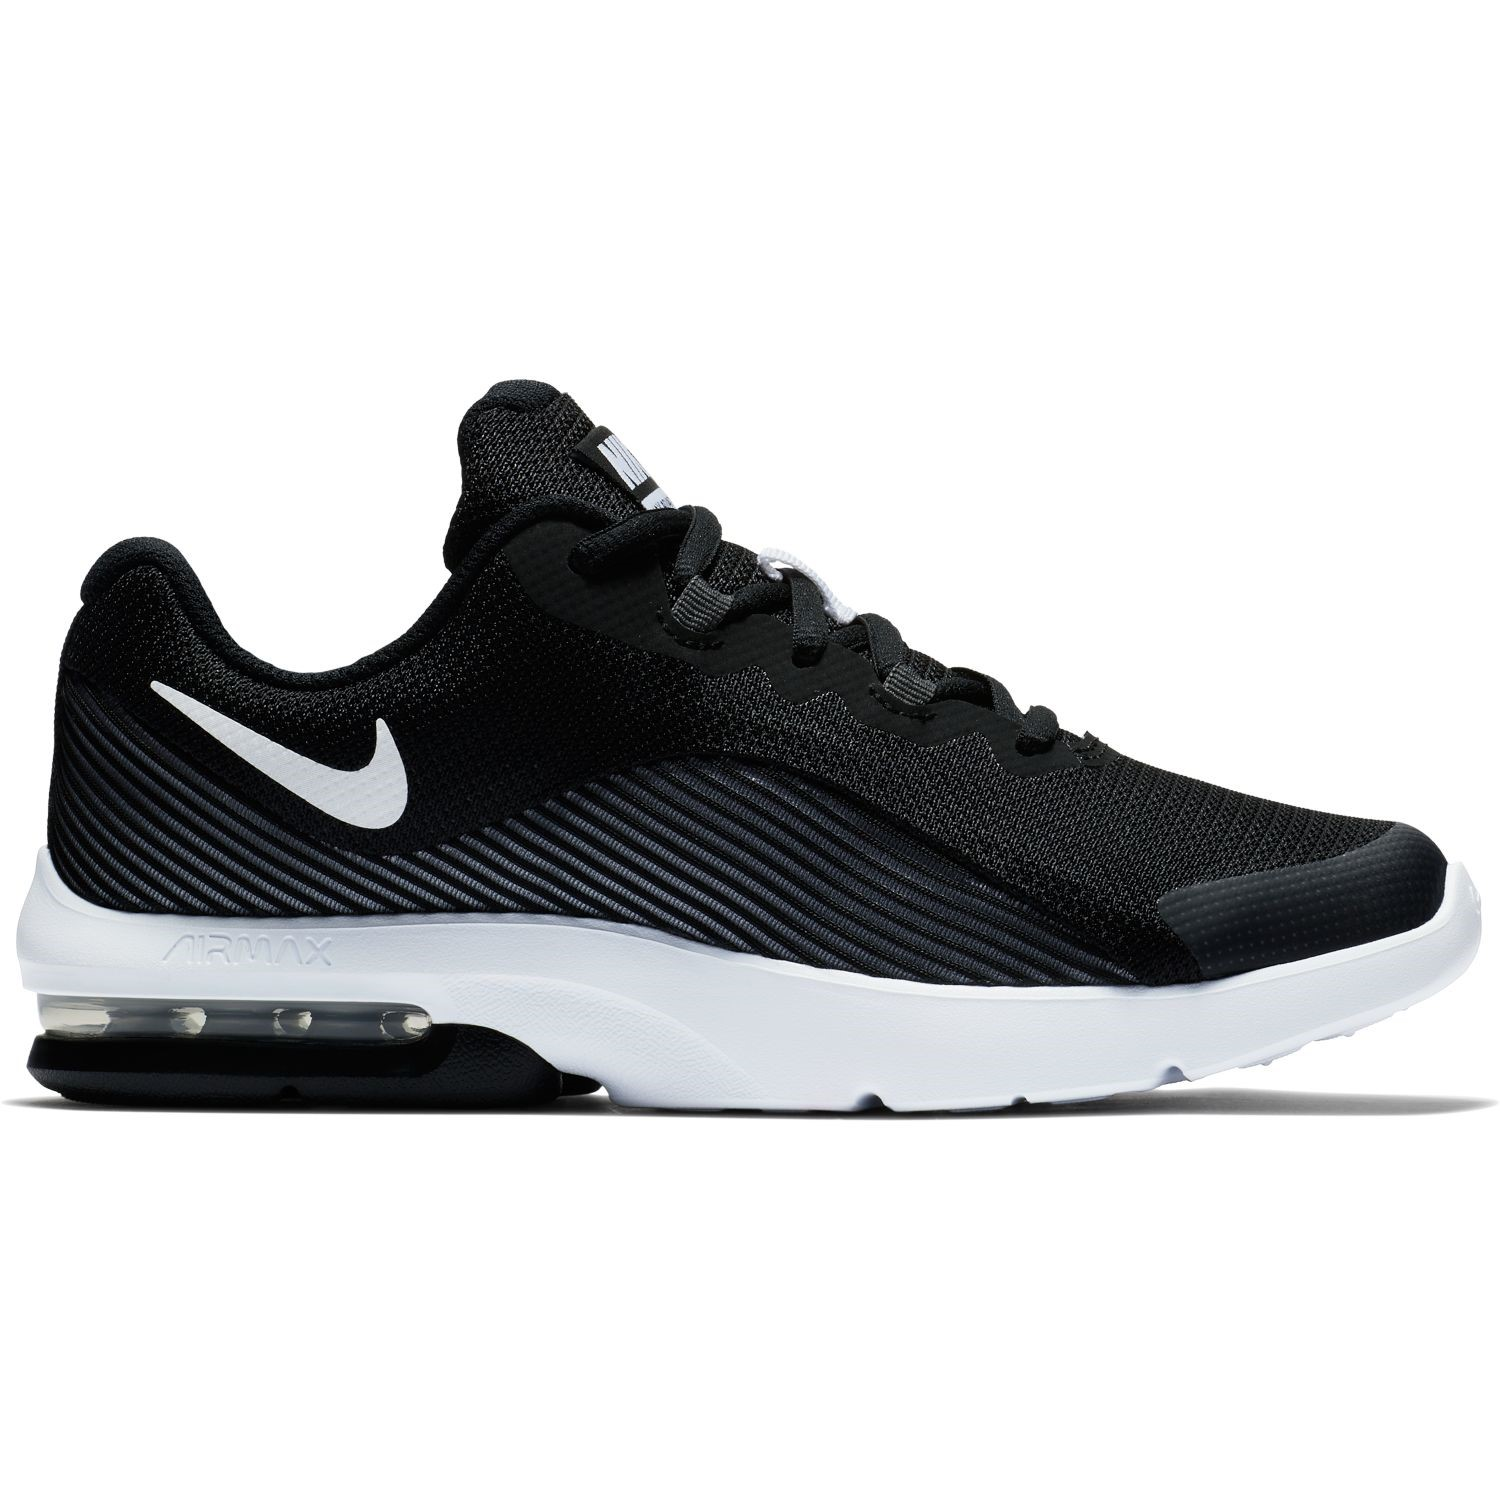 new product b0806 a4fcf Nike Air Max Advantage 2 GS - Kids Boys Sneakers - Black White